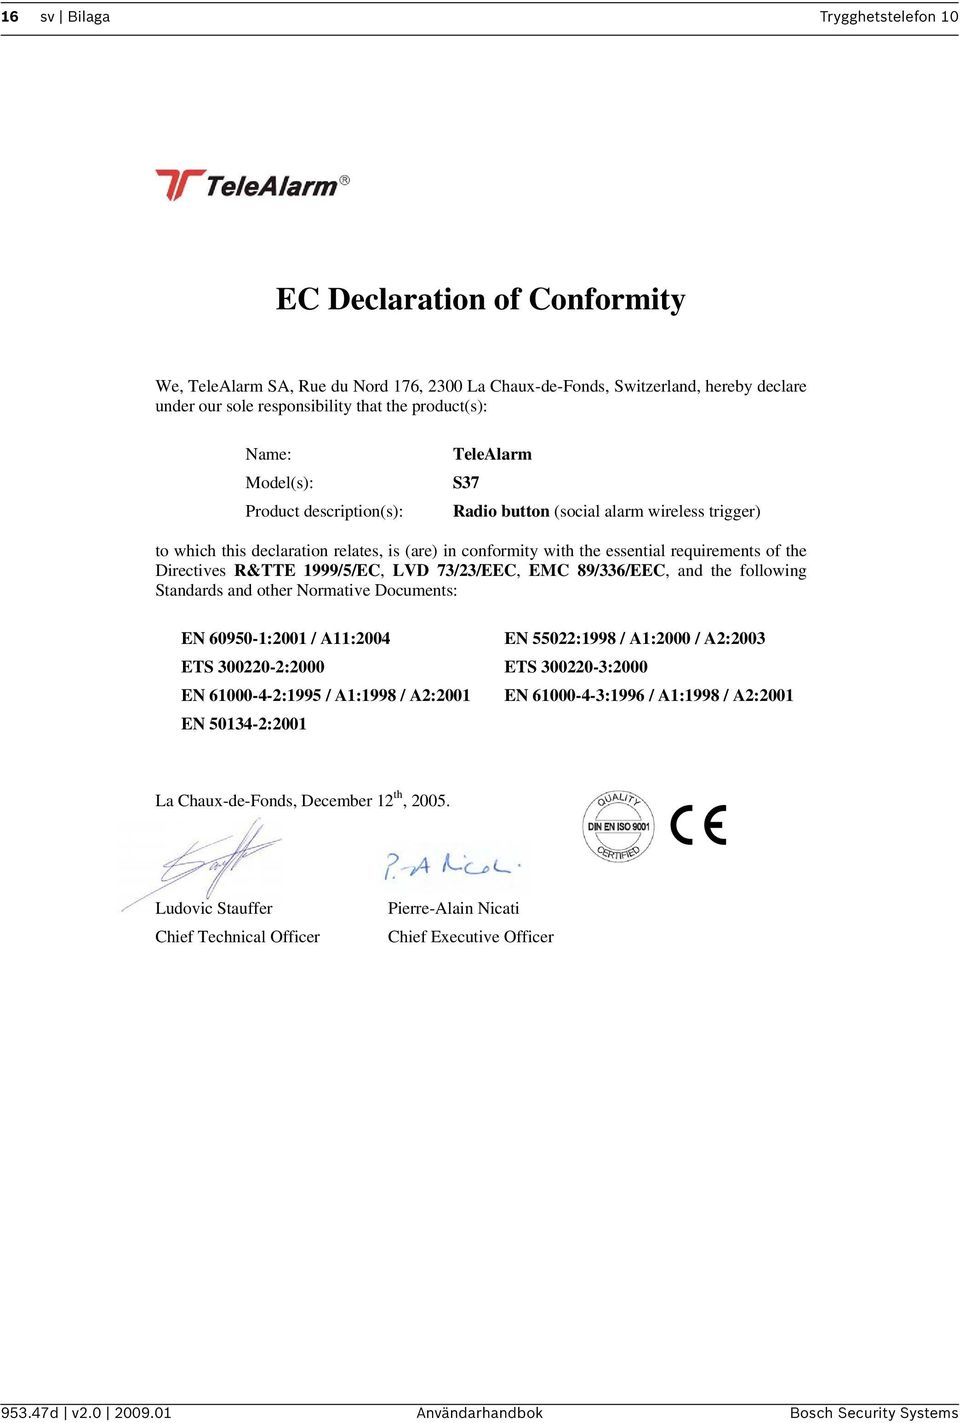 Directives R&TTE 1999/5/EC, LVD 73/23/EEC, EMC 89/336/EEC, and the following Standards and other Normative Documents: EN 60950-1:2001 / A11:2004 EN 55022:1998 / A1:2000 / A2:2003 ETS 300220-2:2000